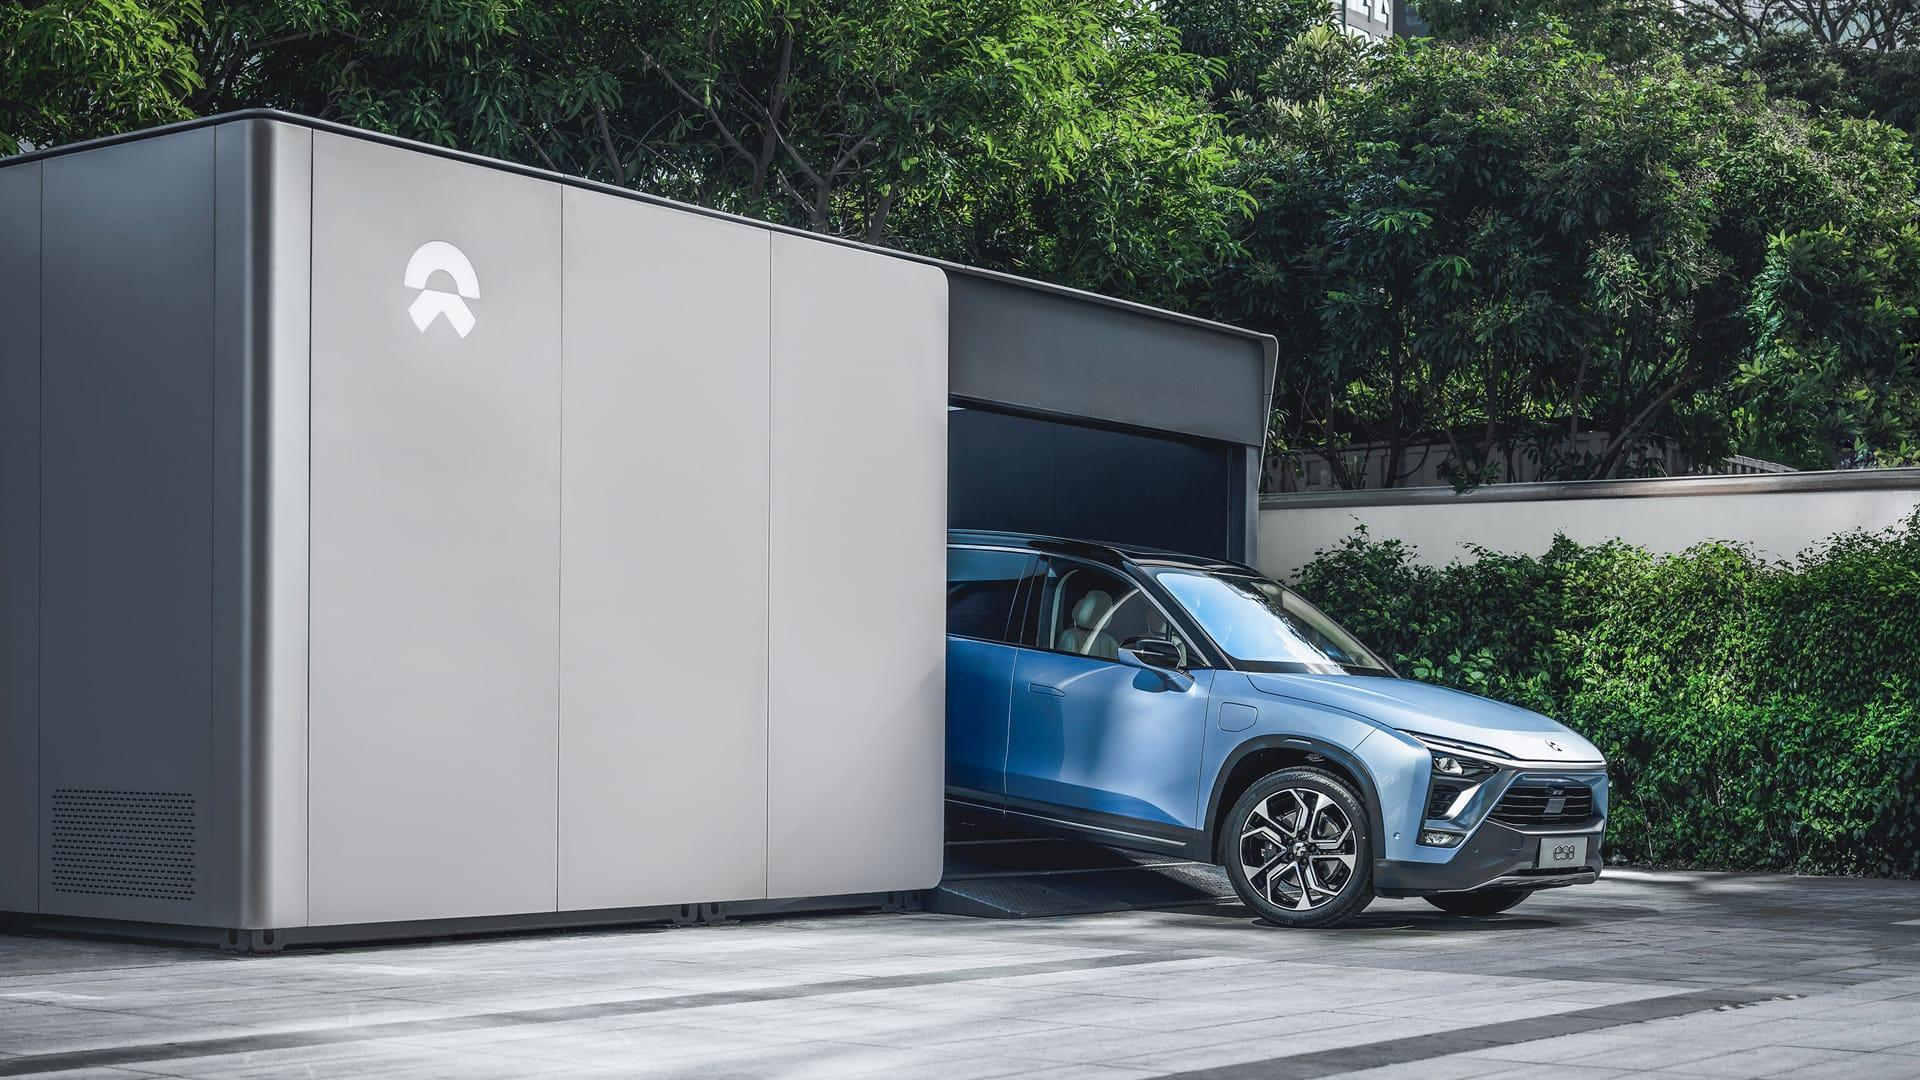 Why Nio, XPeng, and Li Auto Stocks Are Falling Today